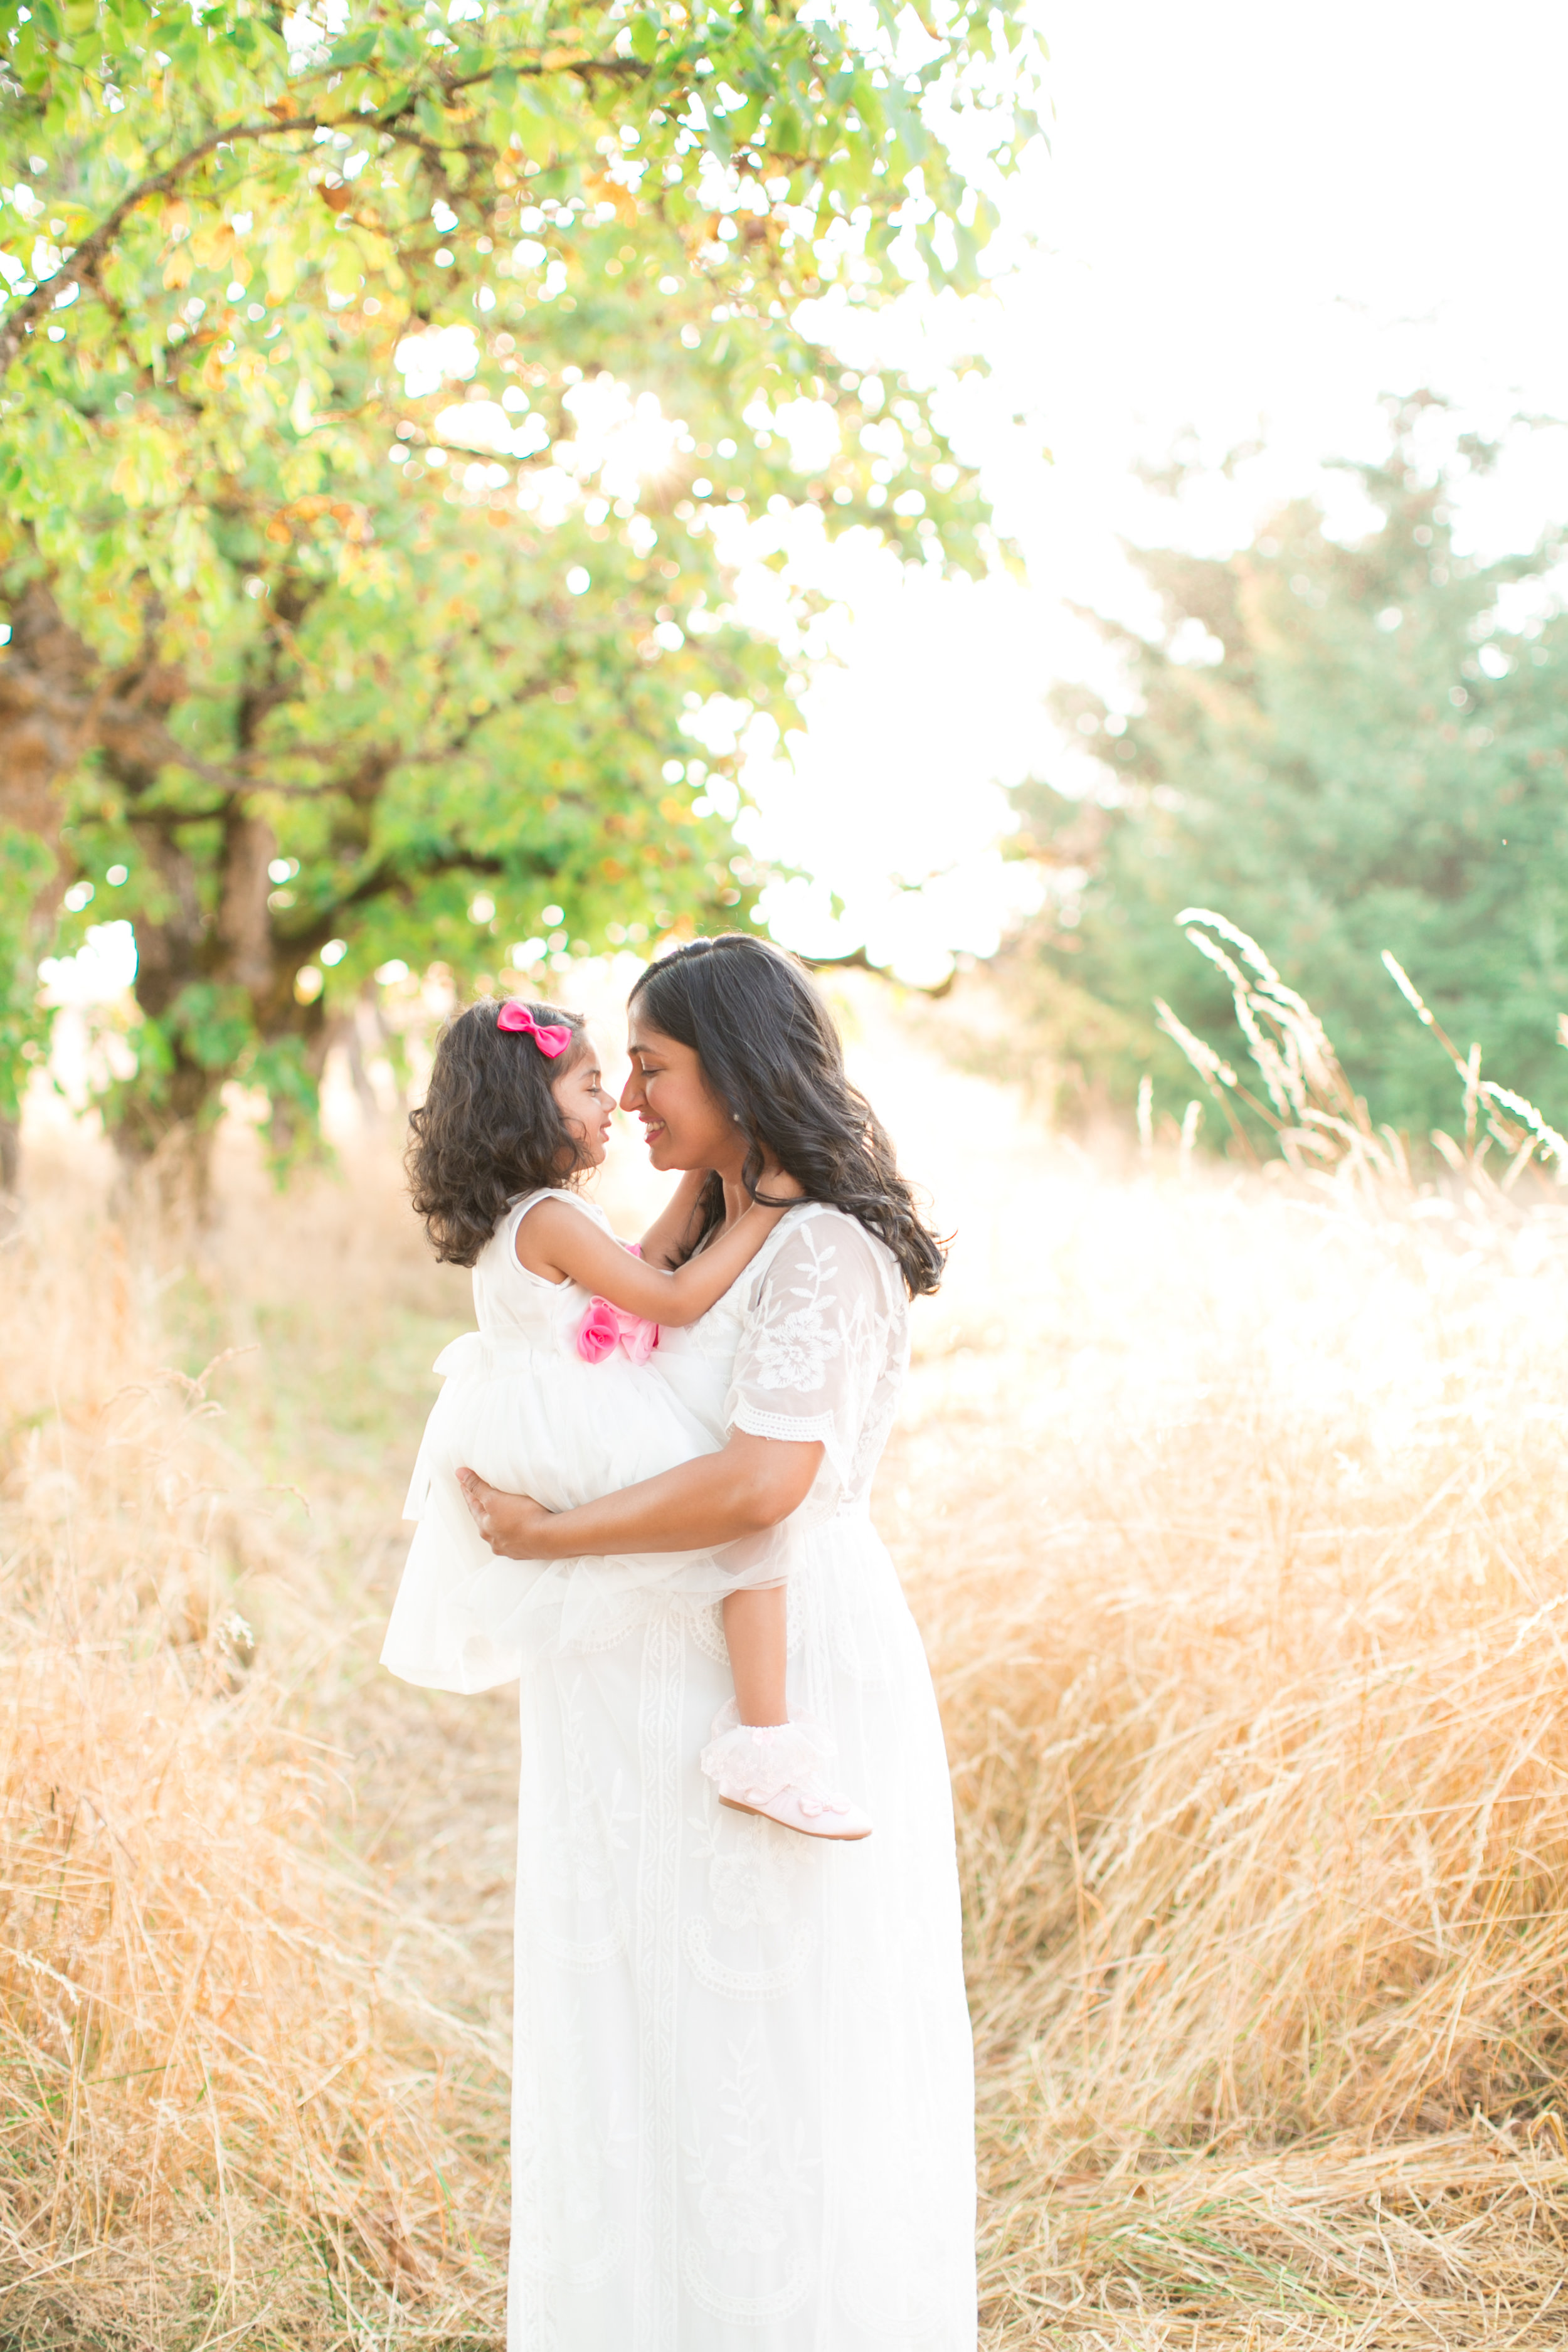 portland photographer, natalie brenner, fall mini sessions 2018